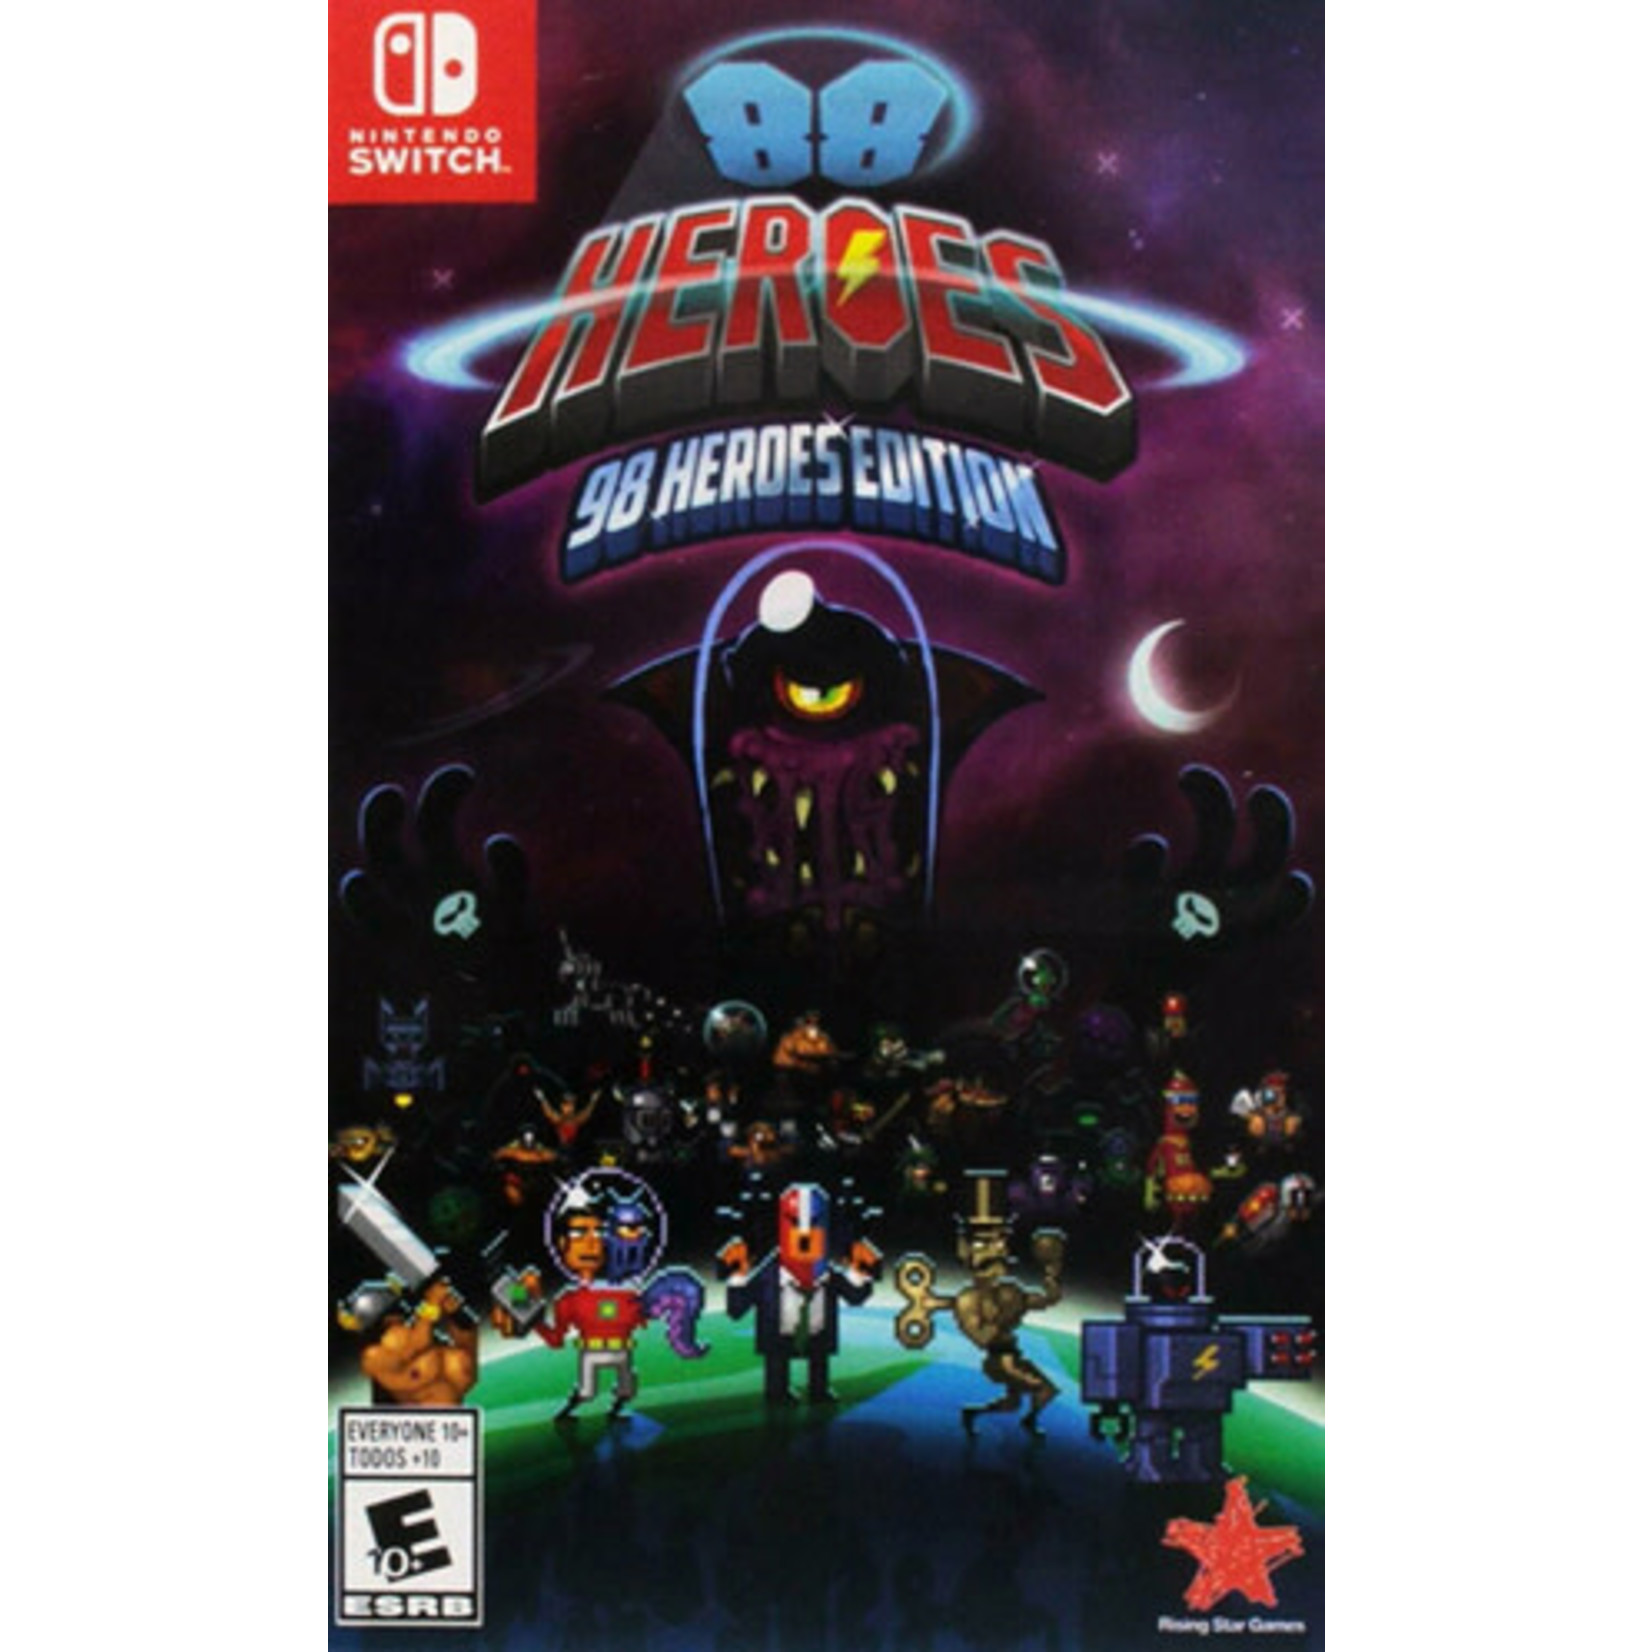 SWITCH-88 Heroes: 98 Heroes Edition